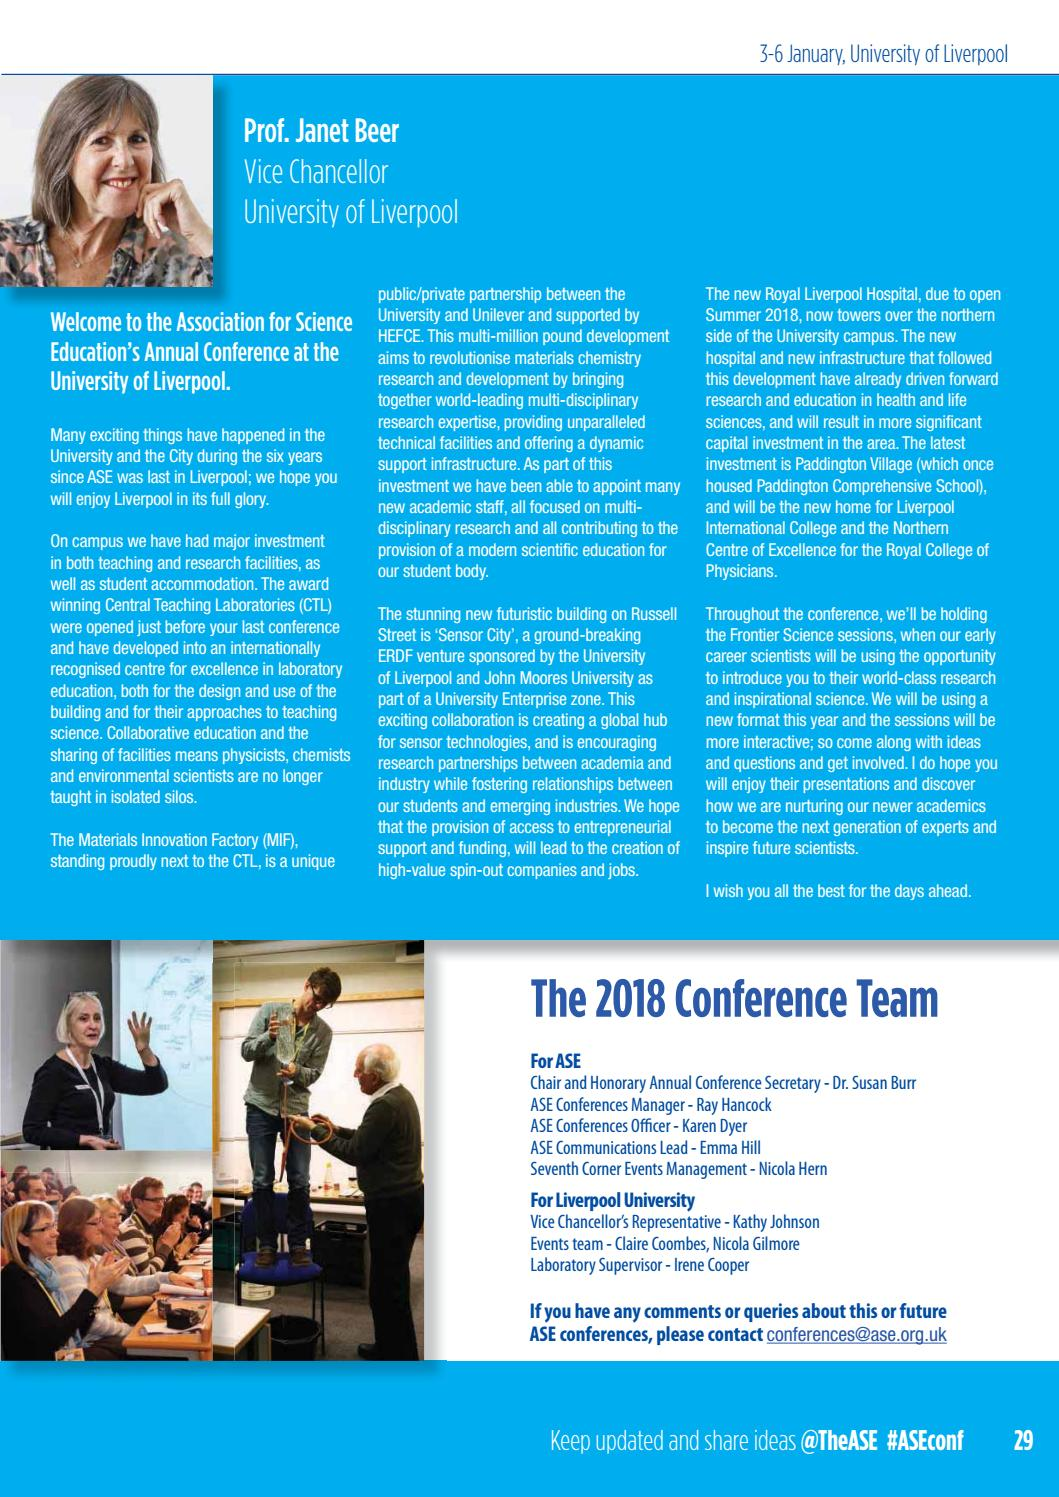 ASE Annual Conference Handbook 2018 by The Association for